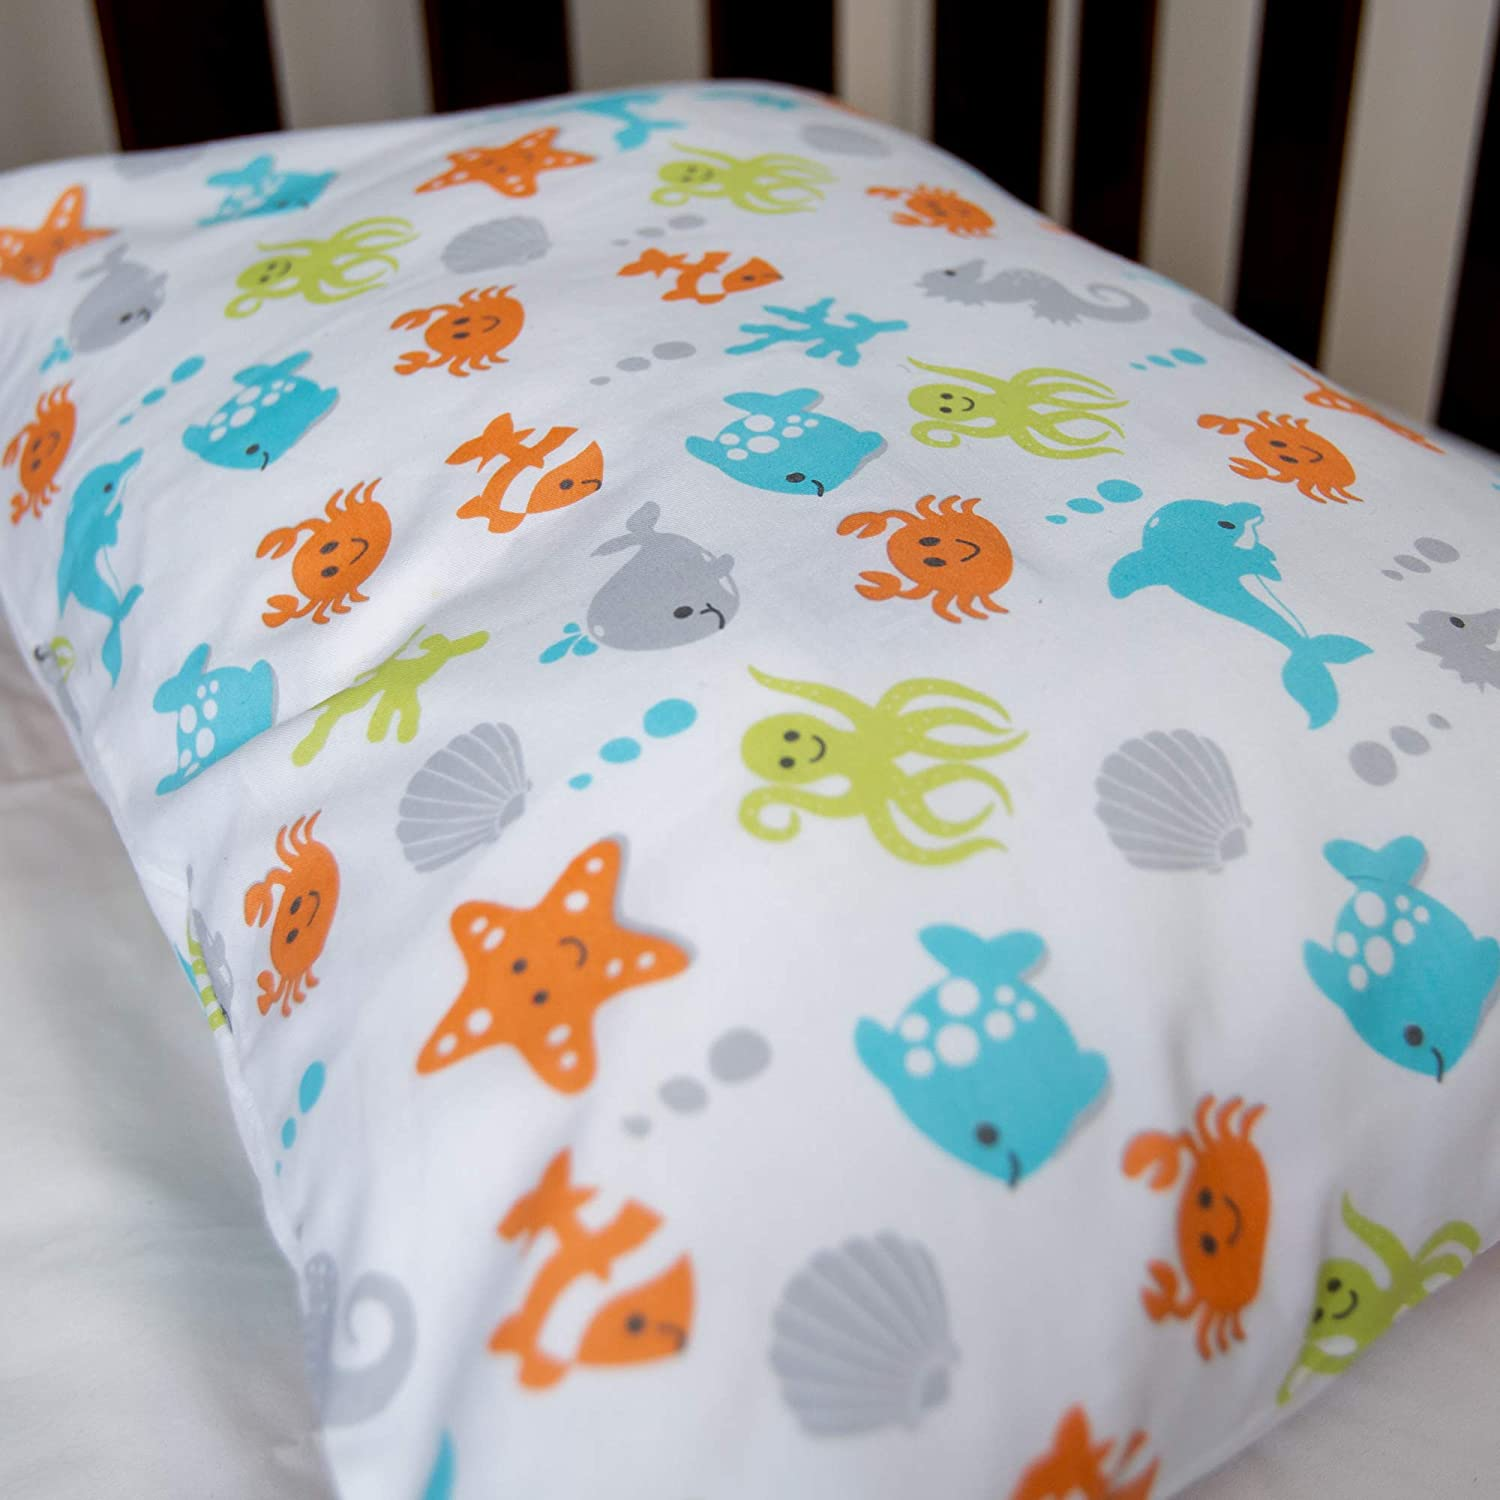 Machine Washable Naturally Hypoallergenic and Soft 100/% Cotton Designed in USA BB MY BEST BUDDY Toddler Kids Pillowcase for Boys and Girls shrinks to fit Butterfly//Butterflies 13 x 18